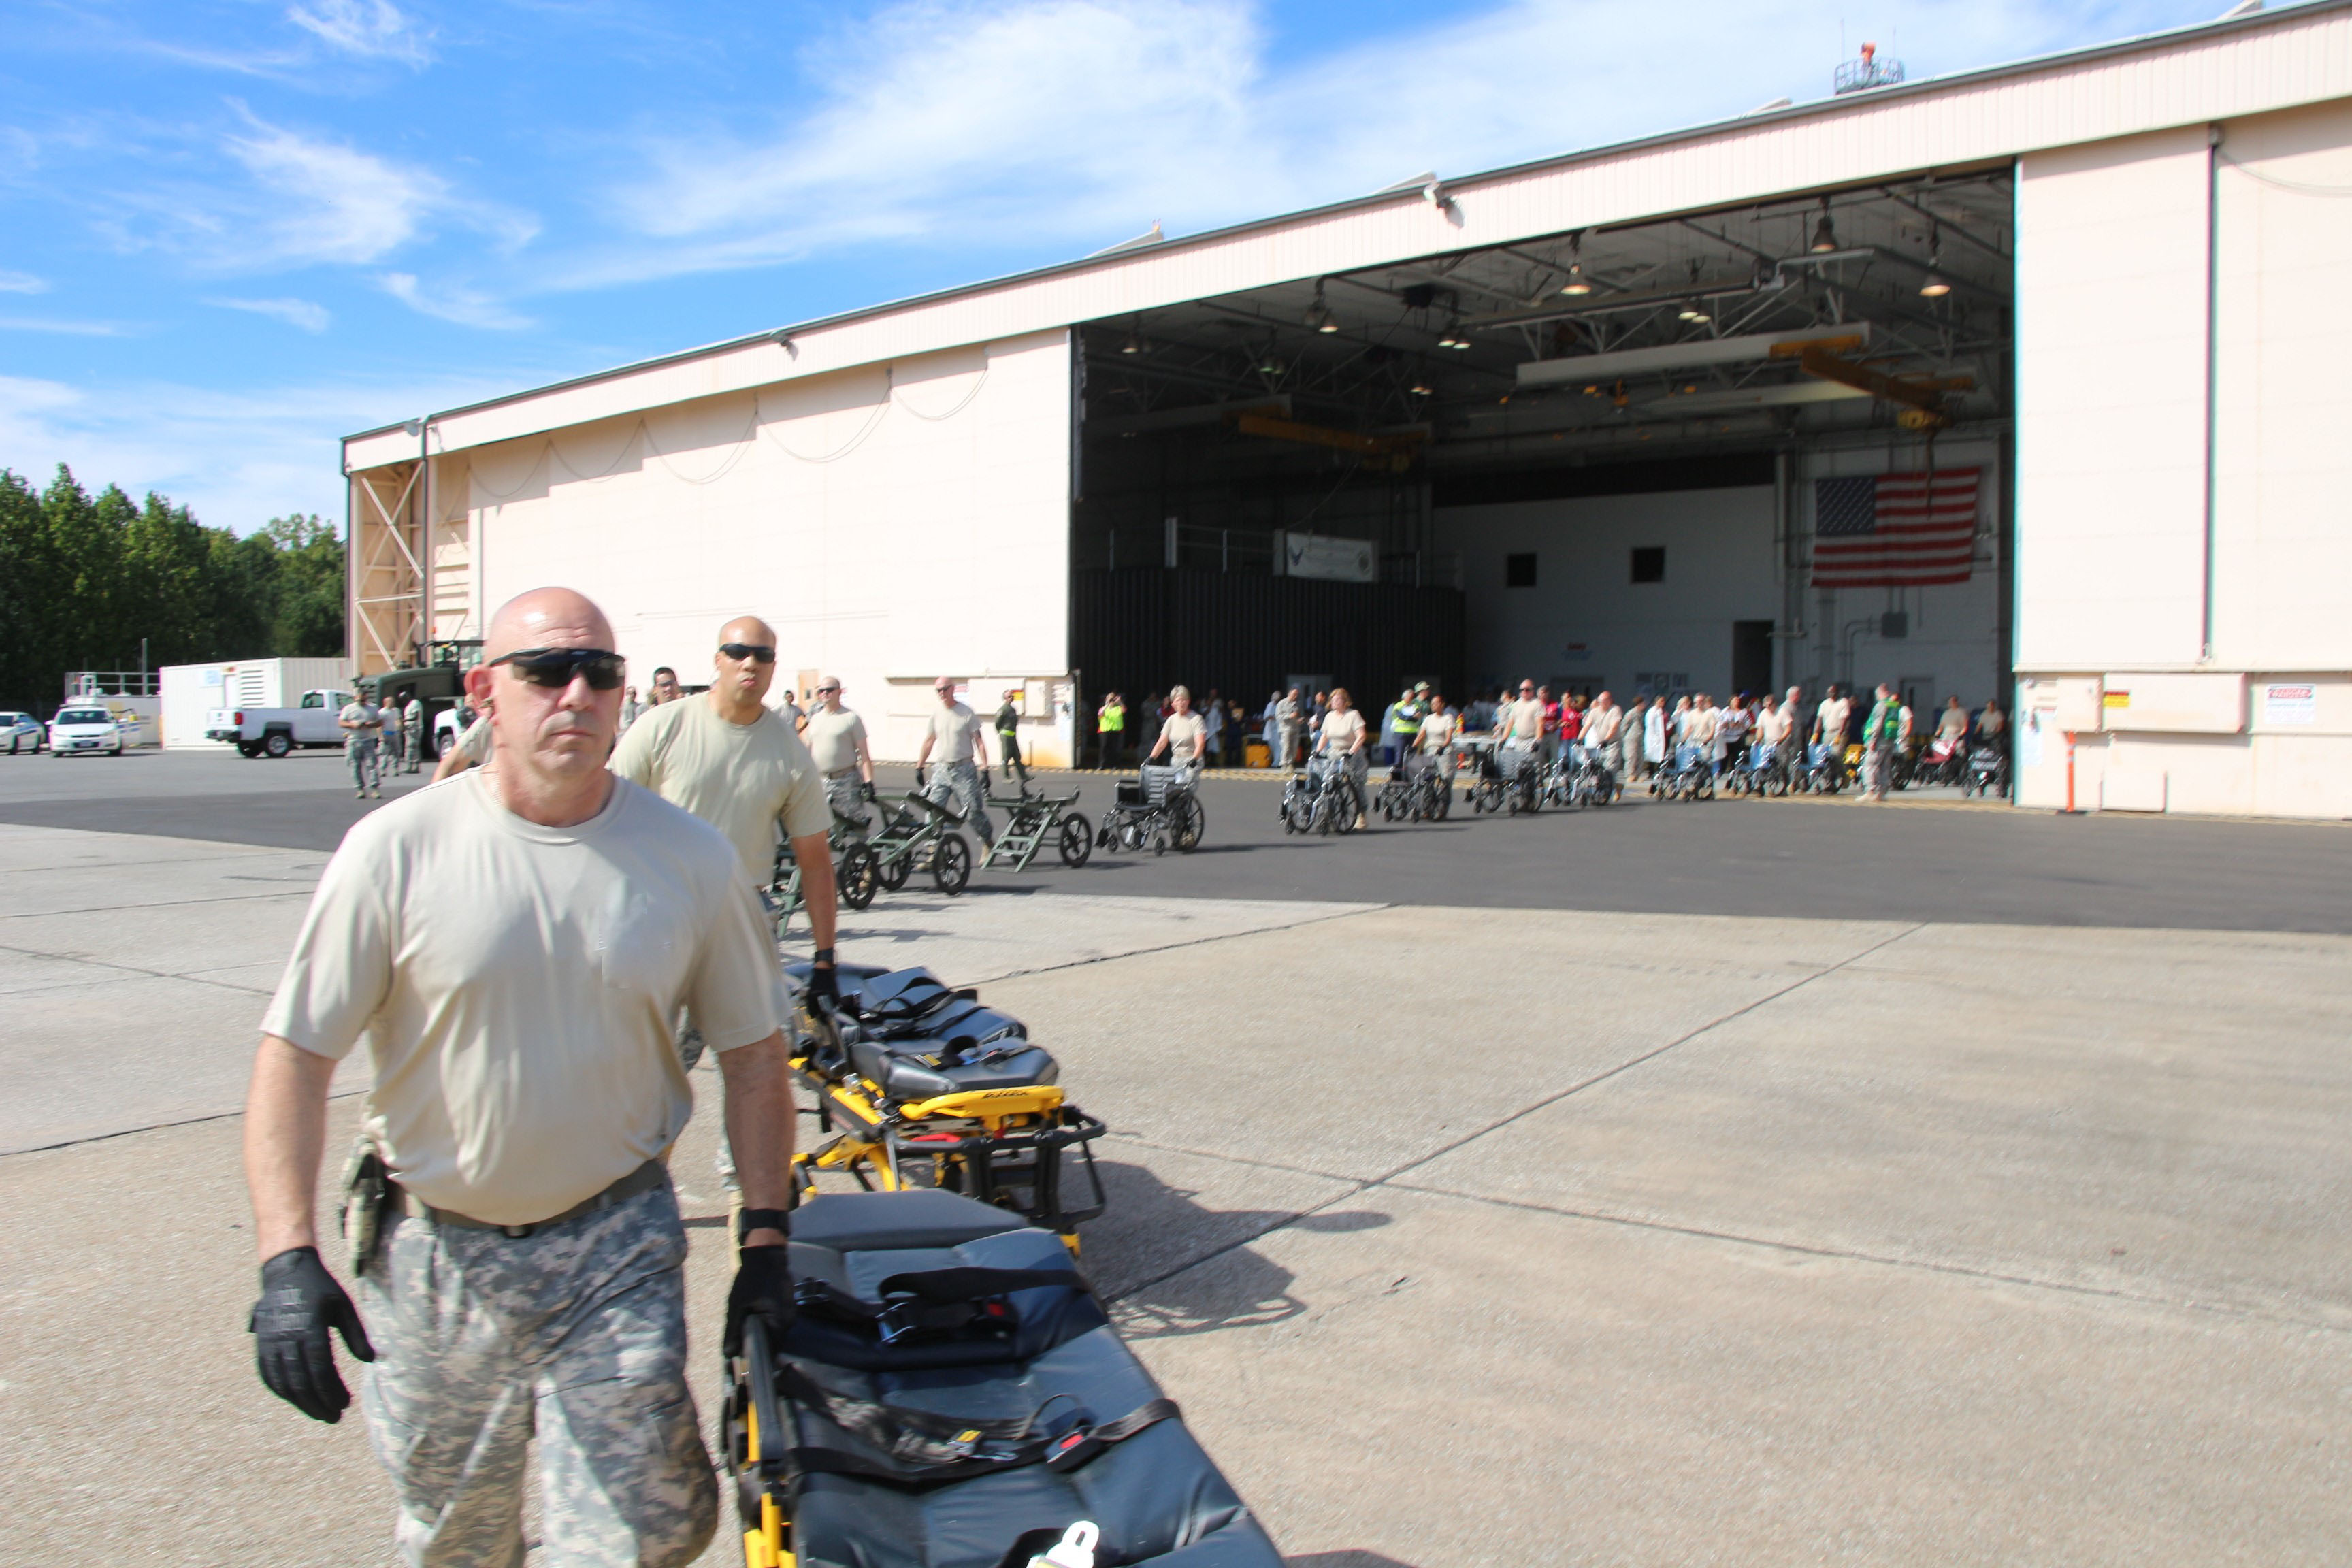 Specialist Joseph Costa lead the formation of Georgia State Defense Force soldiers lined up for offloading evacuees from the C-130H aircraft, who were transported to Dobbins Air Reserve Base, Marietta, Georgia from the U.S. Virgin Islands and Puerto Rico in the aftermath of Hurricane Maria, Oct. 1, 2017. Georgia State Defense Force photo by Maj. Vadim Timchenko